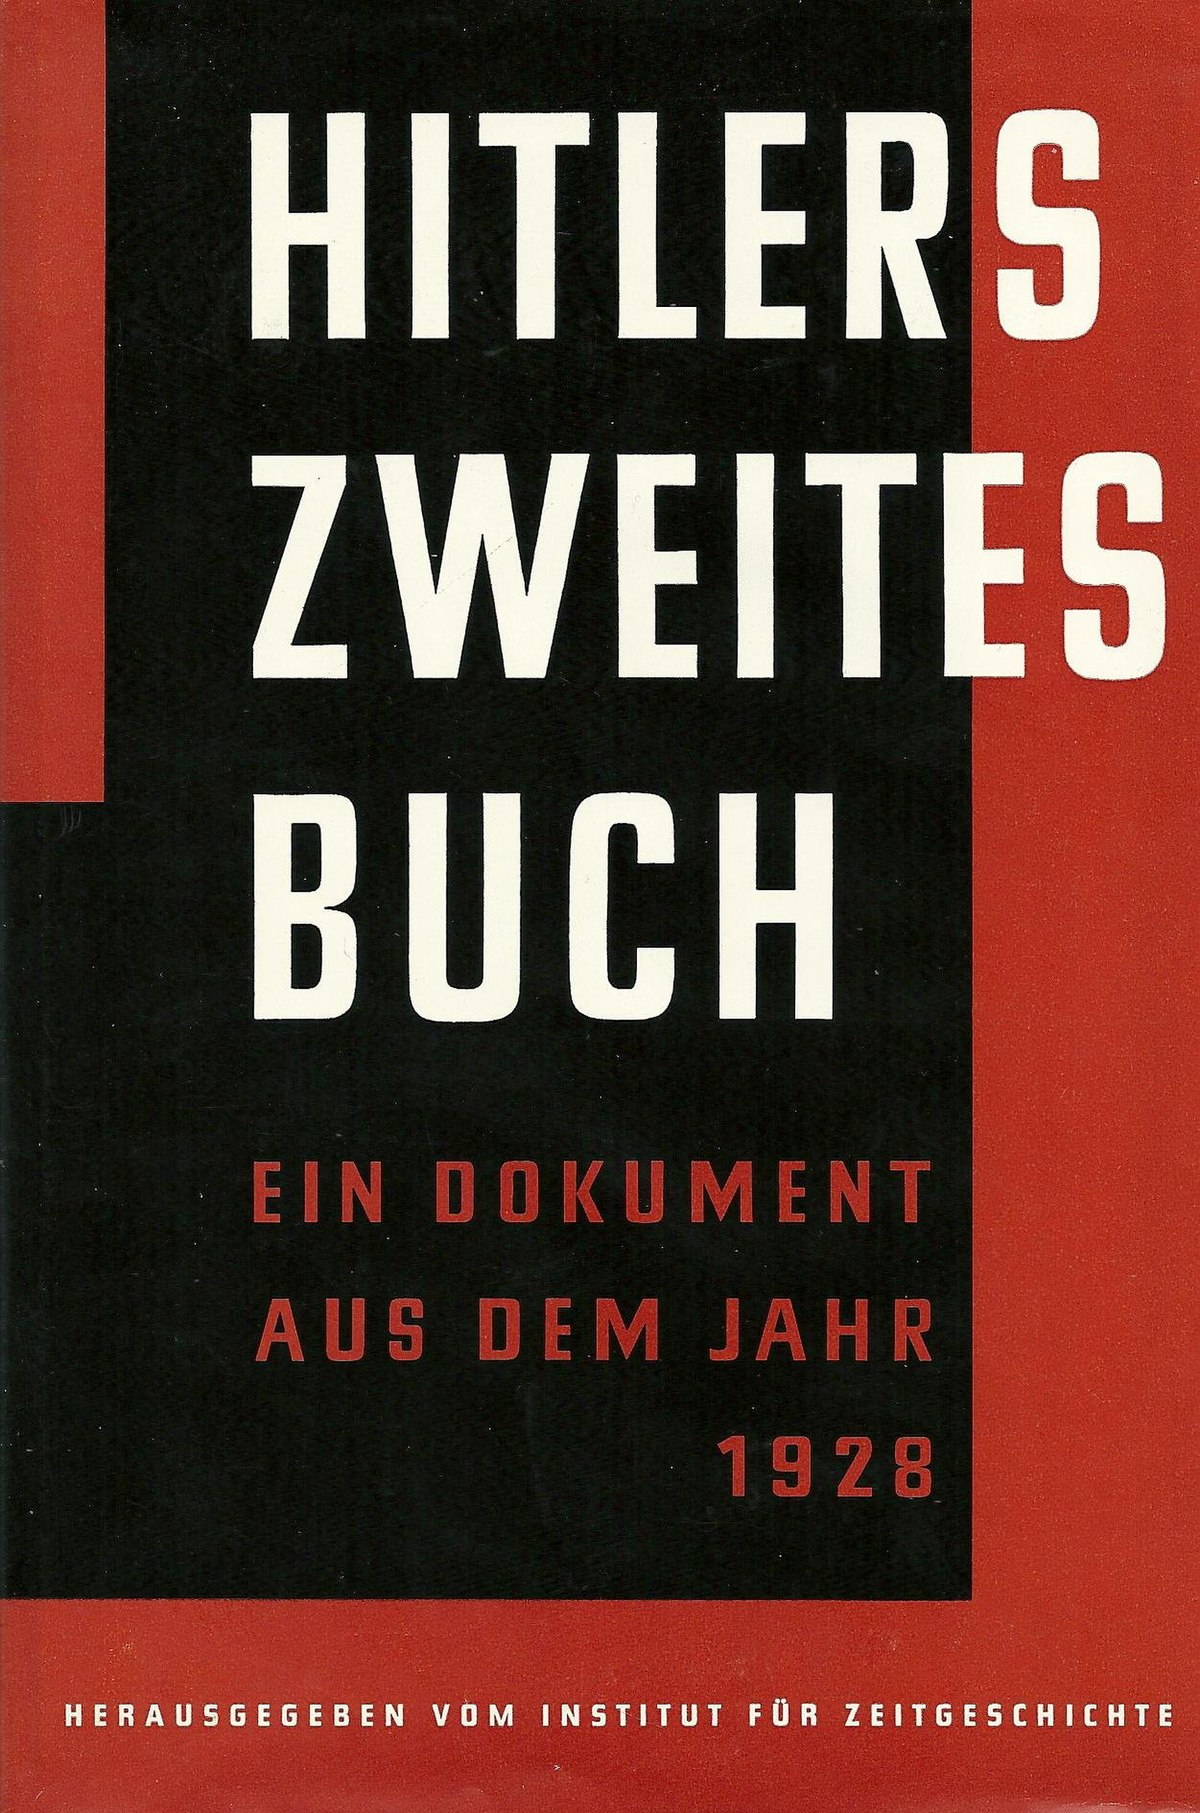 the secret deutsch buch